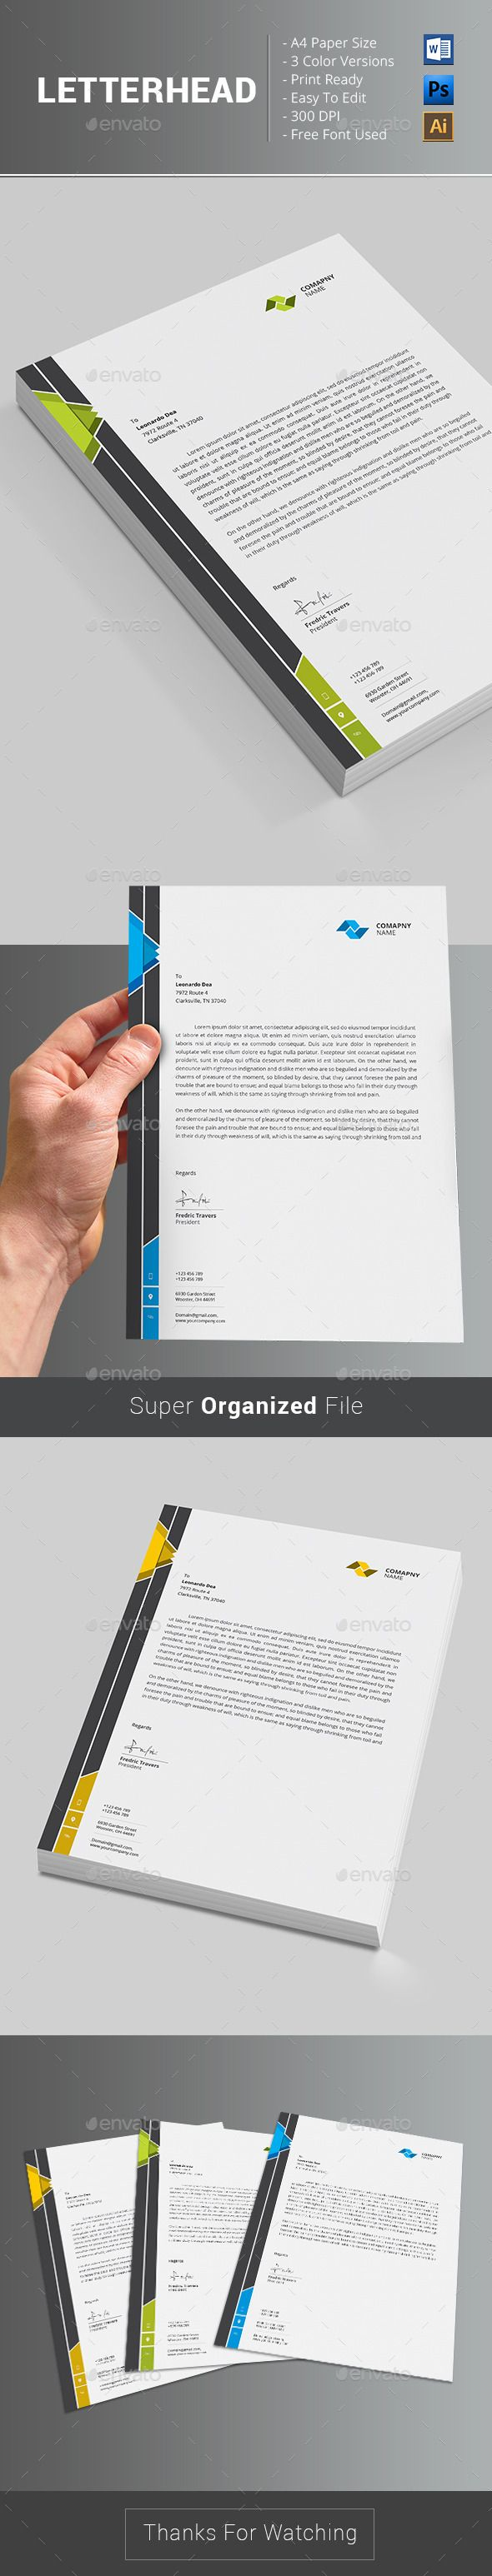 Letterhead letterhead template template and stationery printing buy letterhead by themedevisers on graphicriver letterhead word template with super modern and corporate look corporate letterhead page designs are very spiritdancerdesigns Images